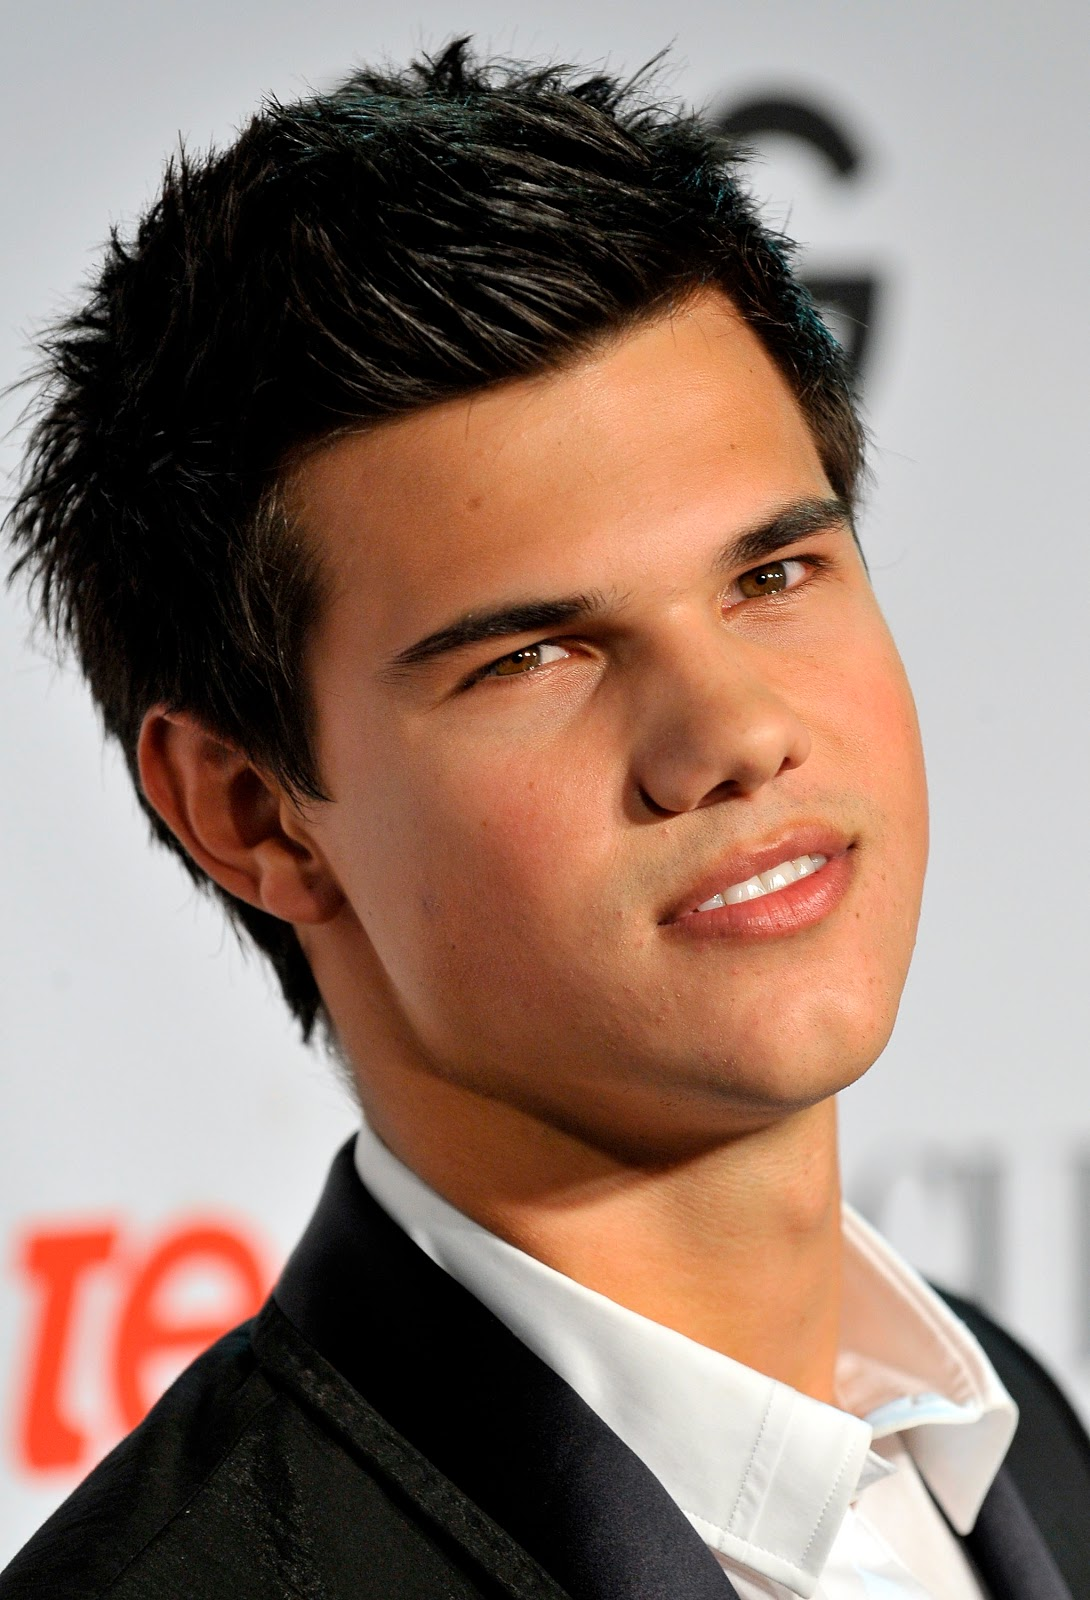 Taylor Lautner | HD Wallpapers (High Definition) | Free ...